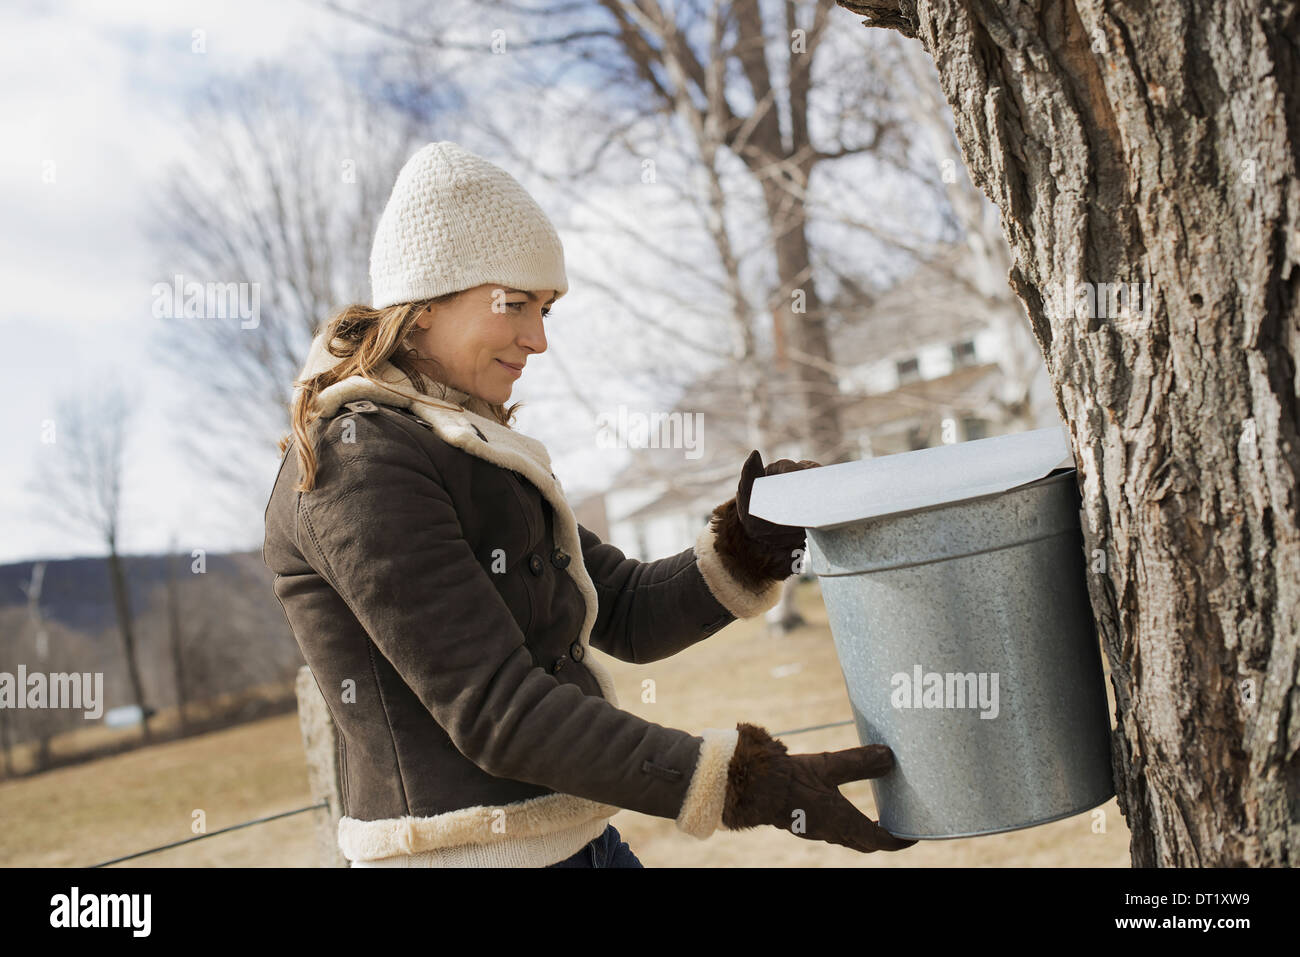 A maple syrup farm A young woman holding a bucket which is tapping the sap from the tree - Stock Image